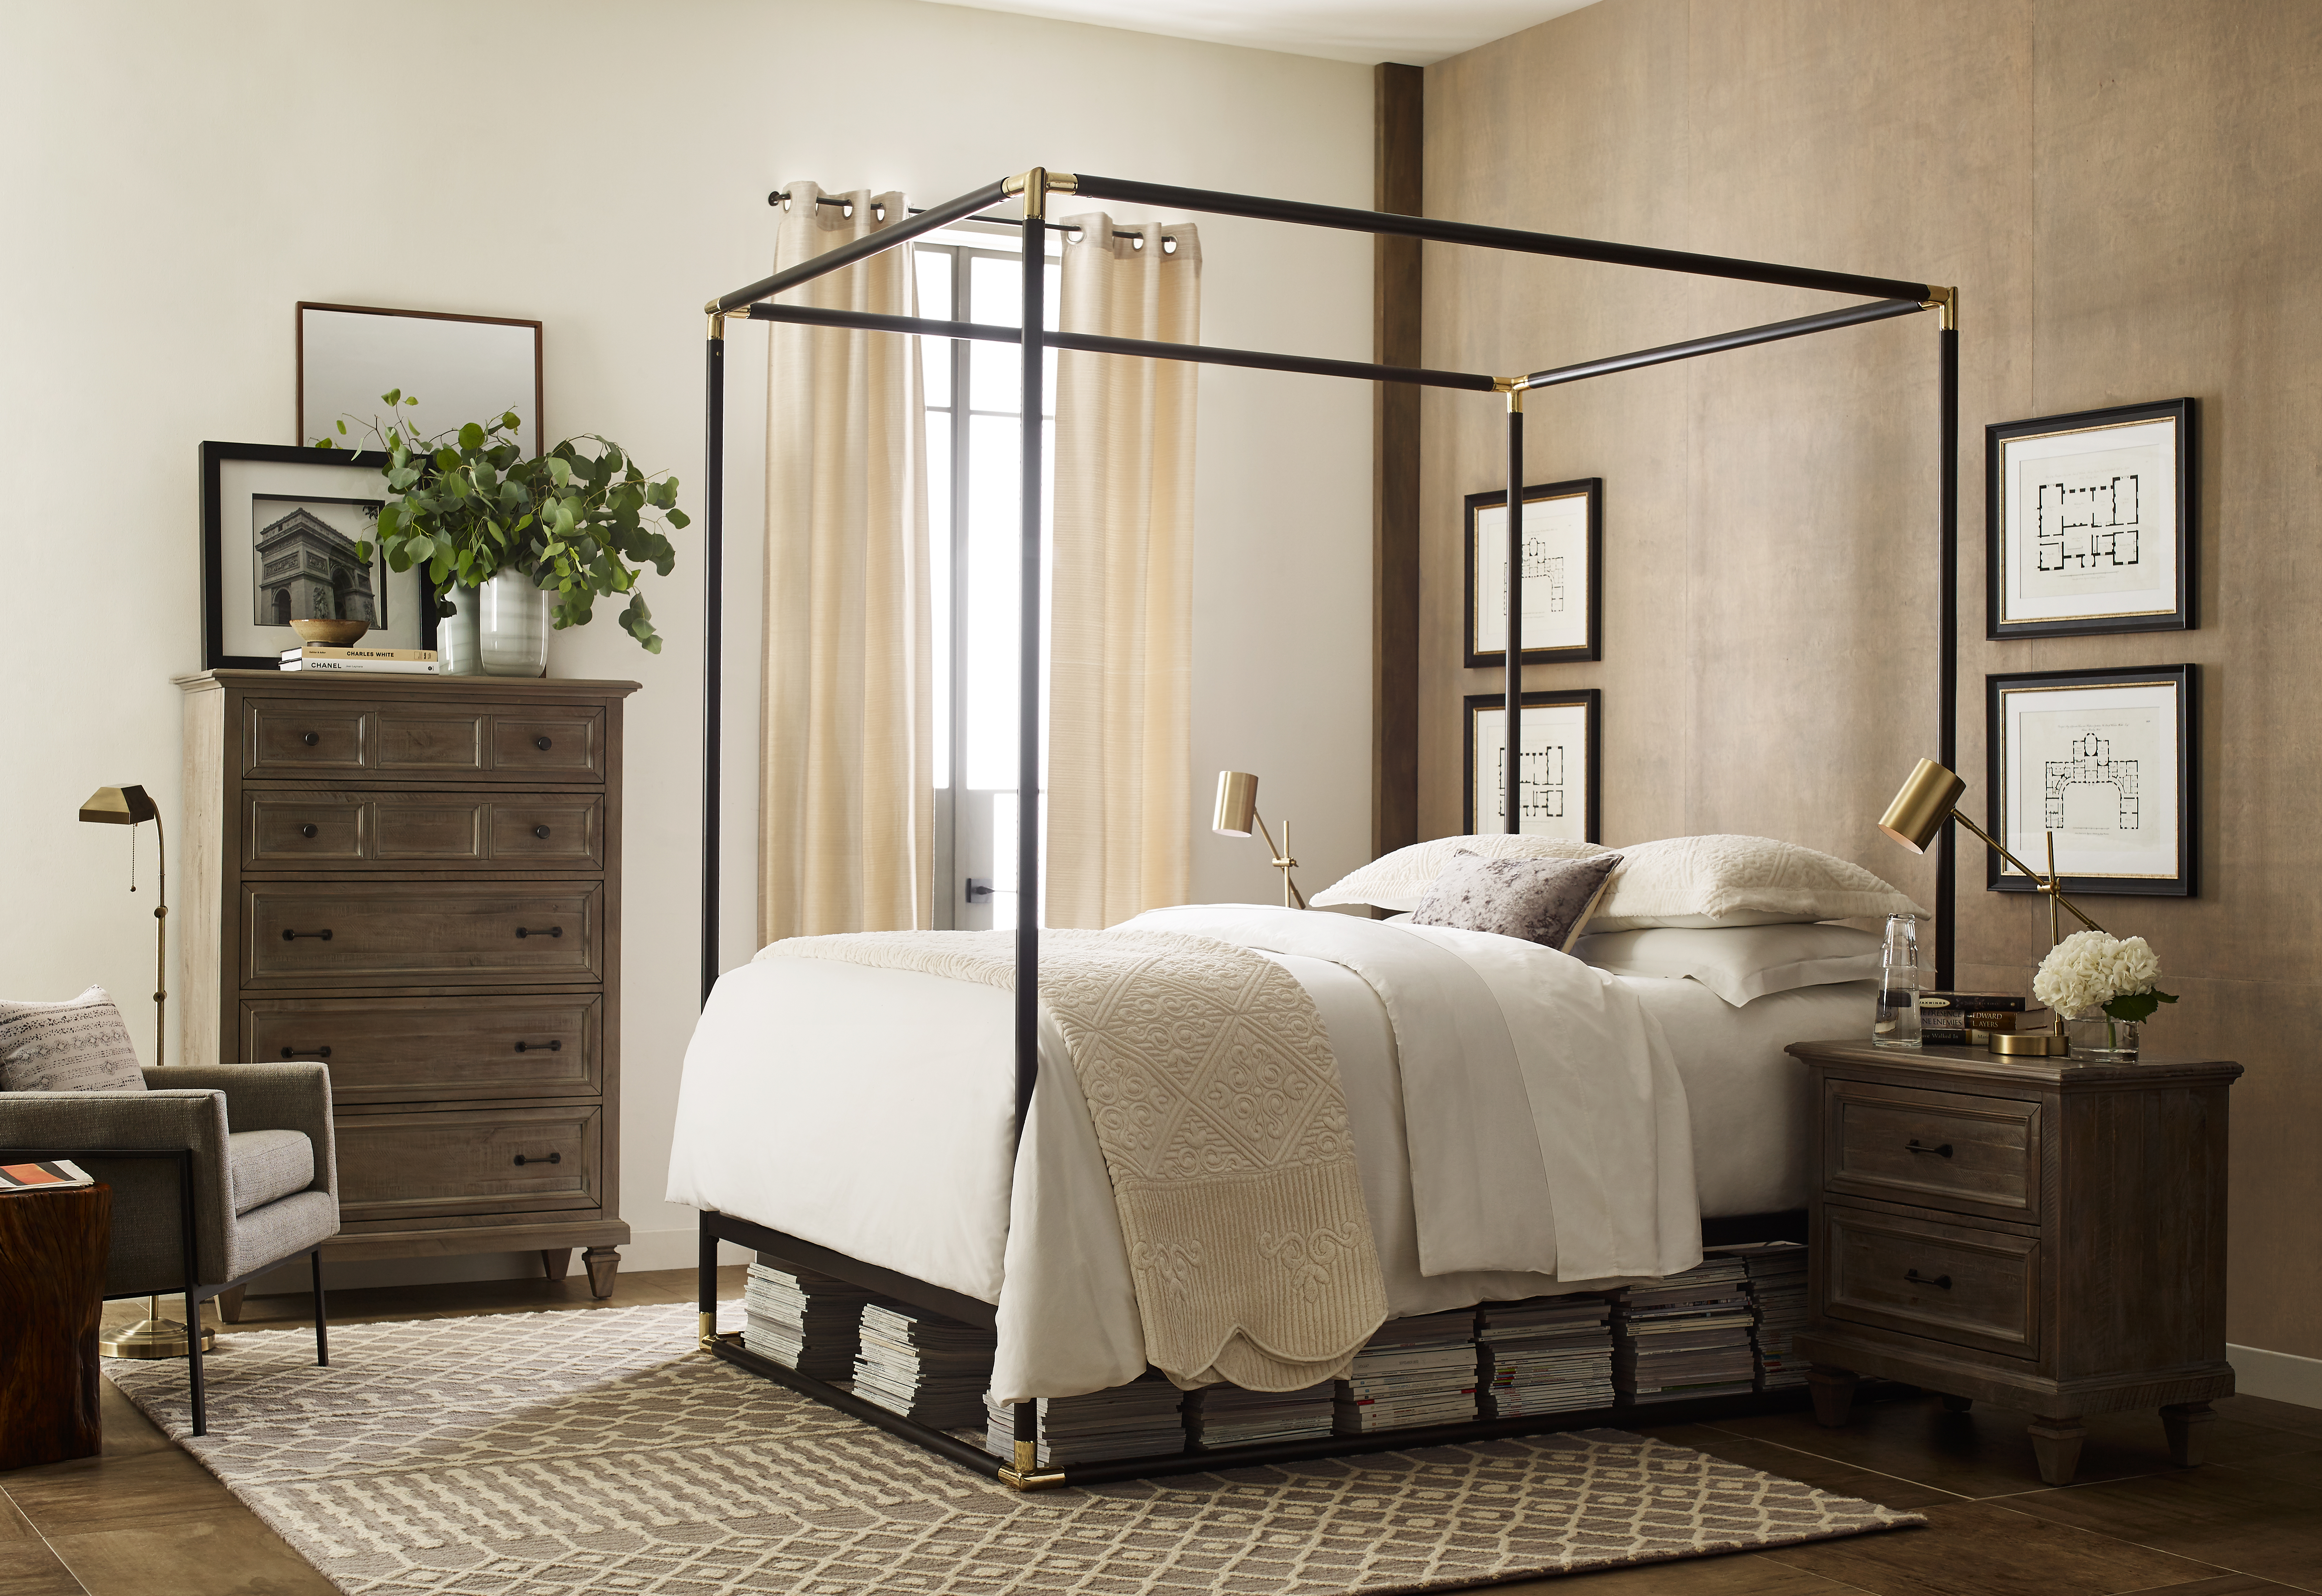 Wayfair S Restoration Hardware Style Line Is On For Way Less Apartment Therapy